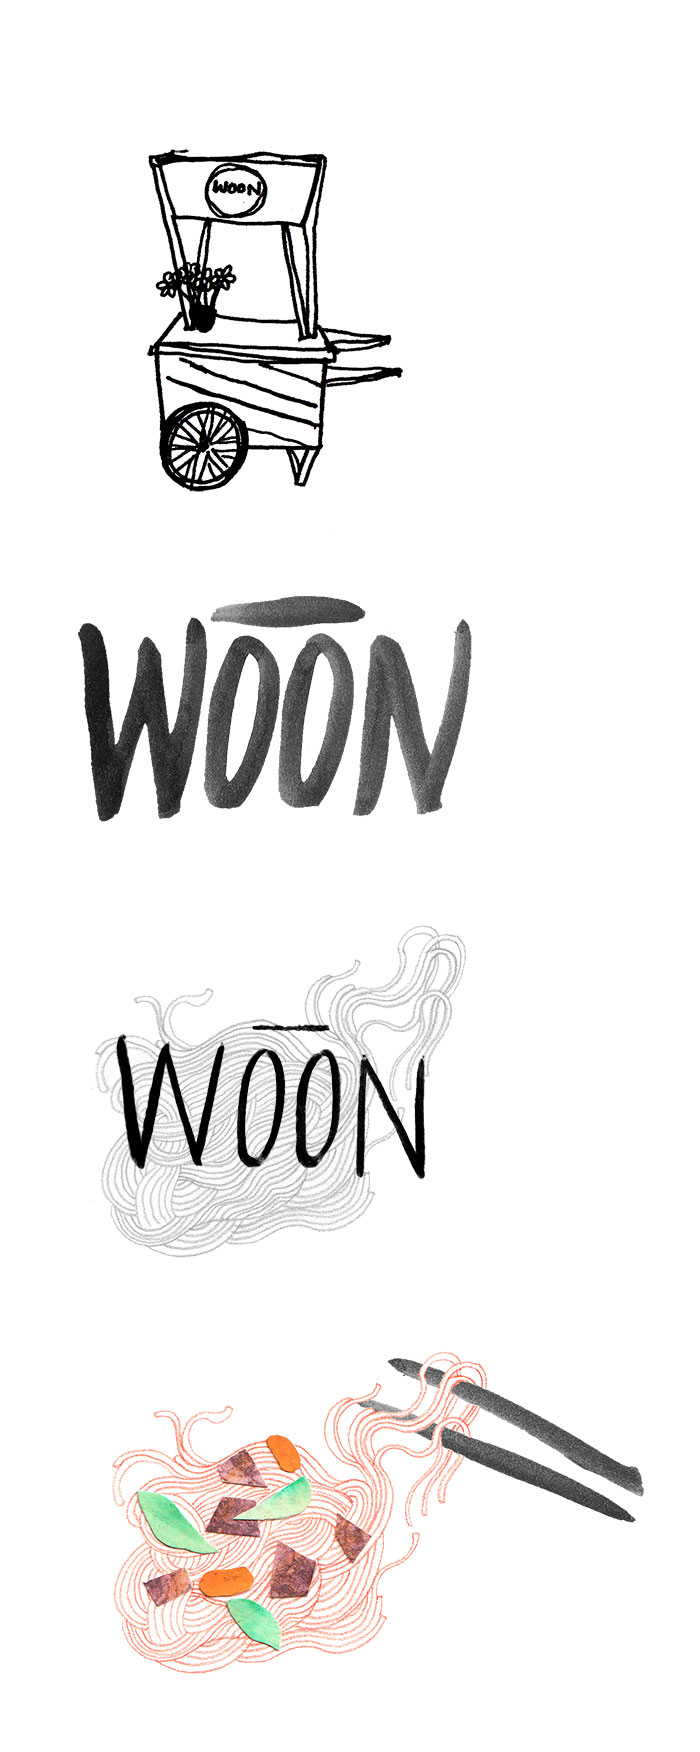 woon-all